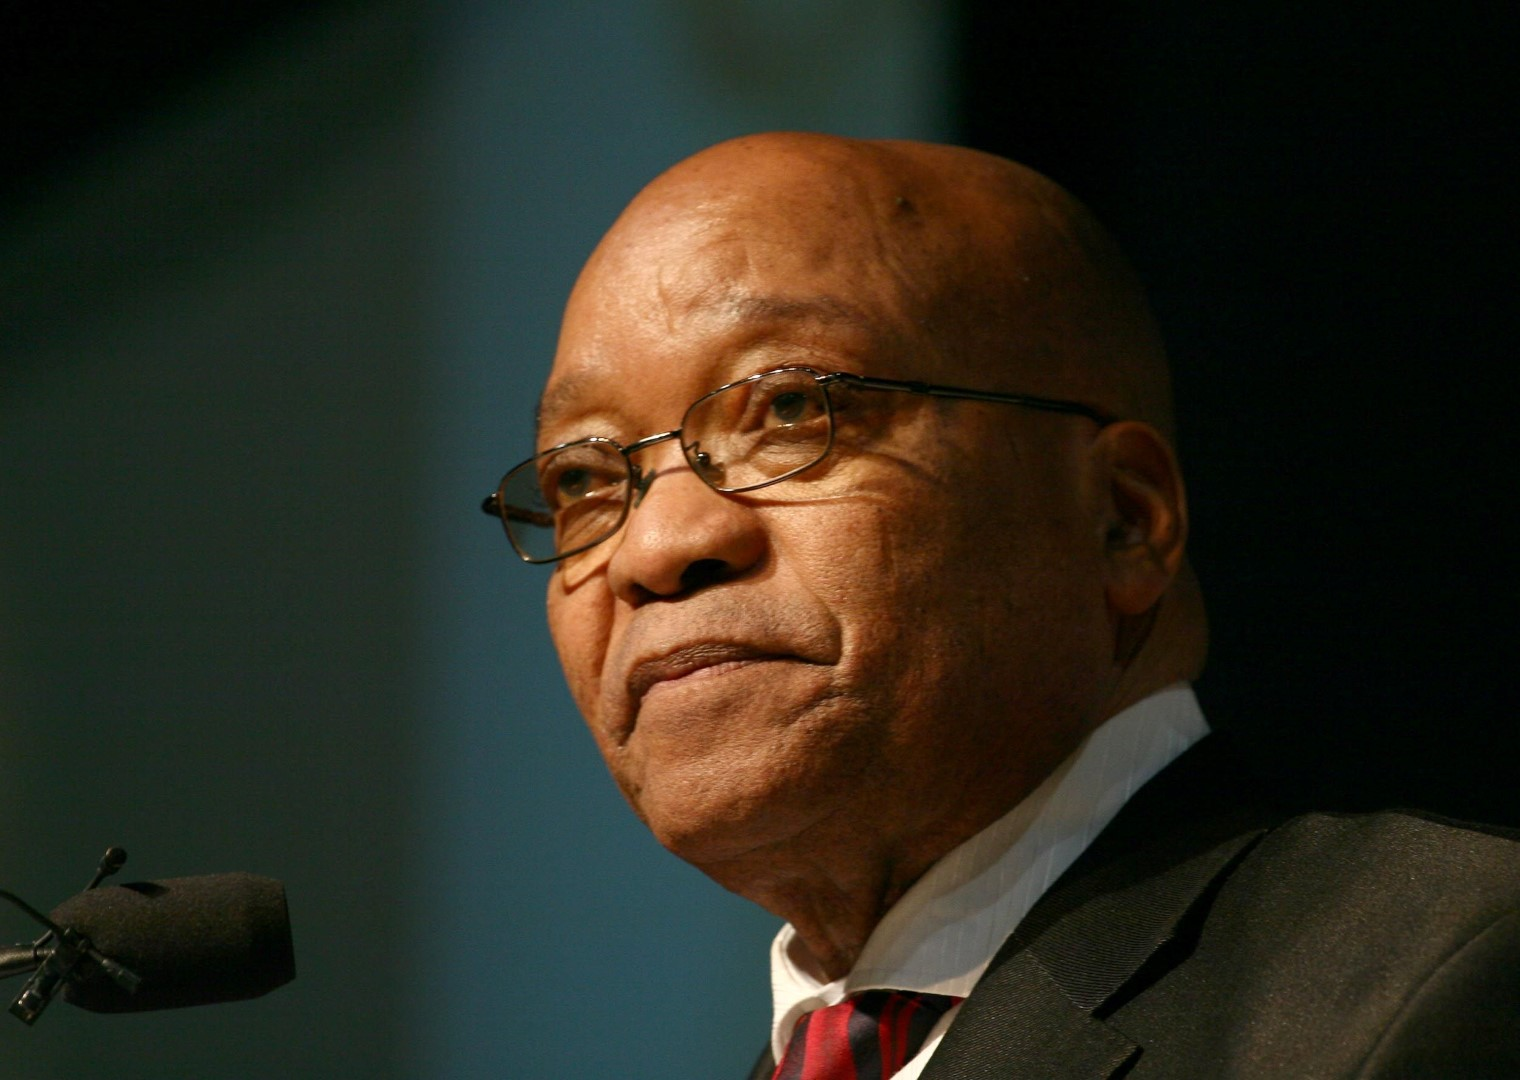 Zuma says black South Africans must fight for economic progress